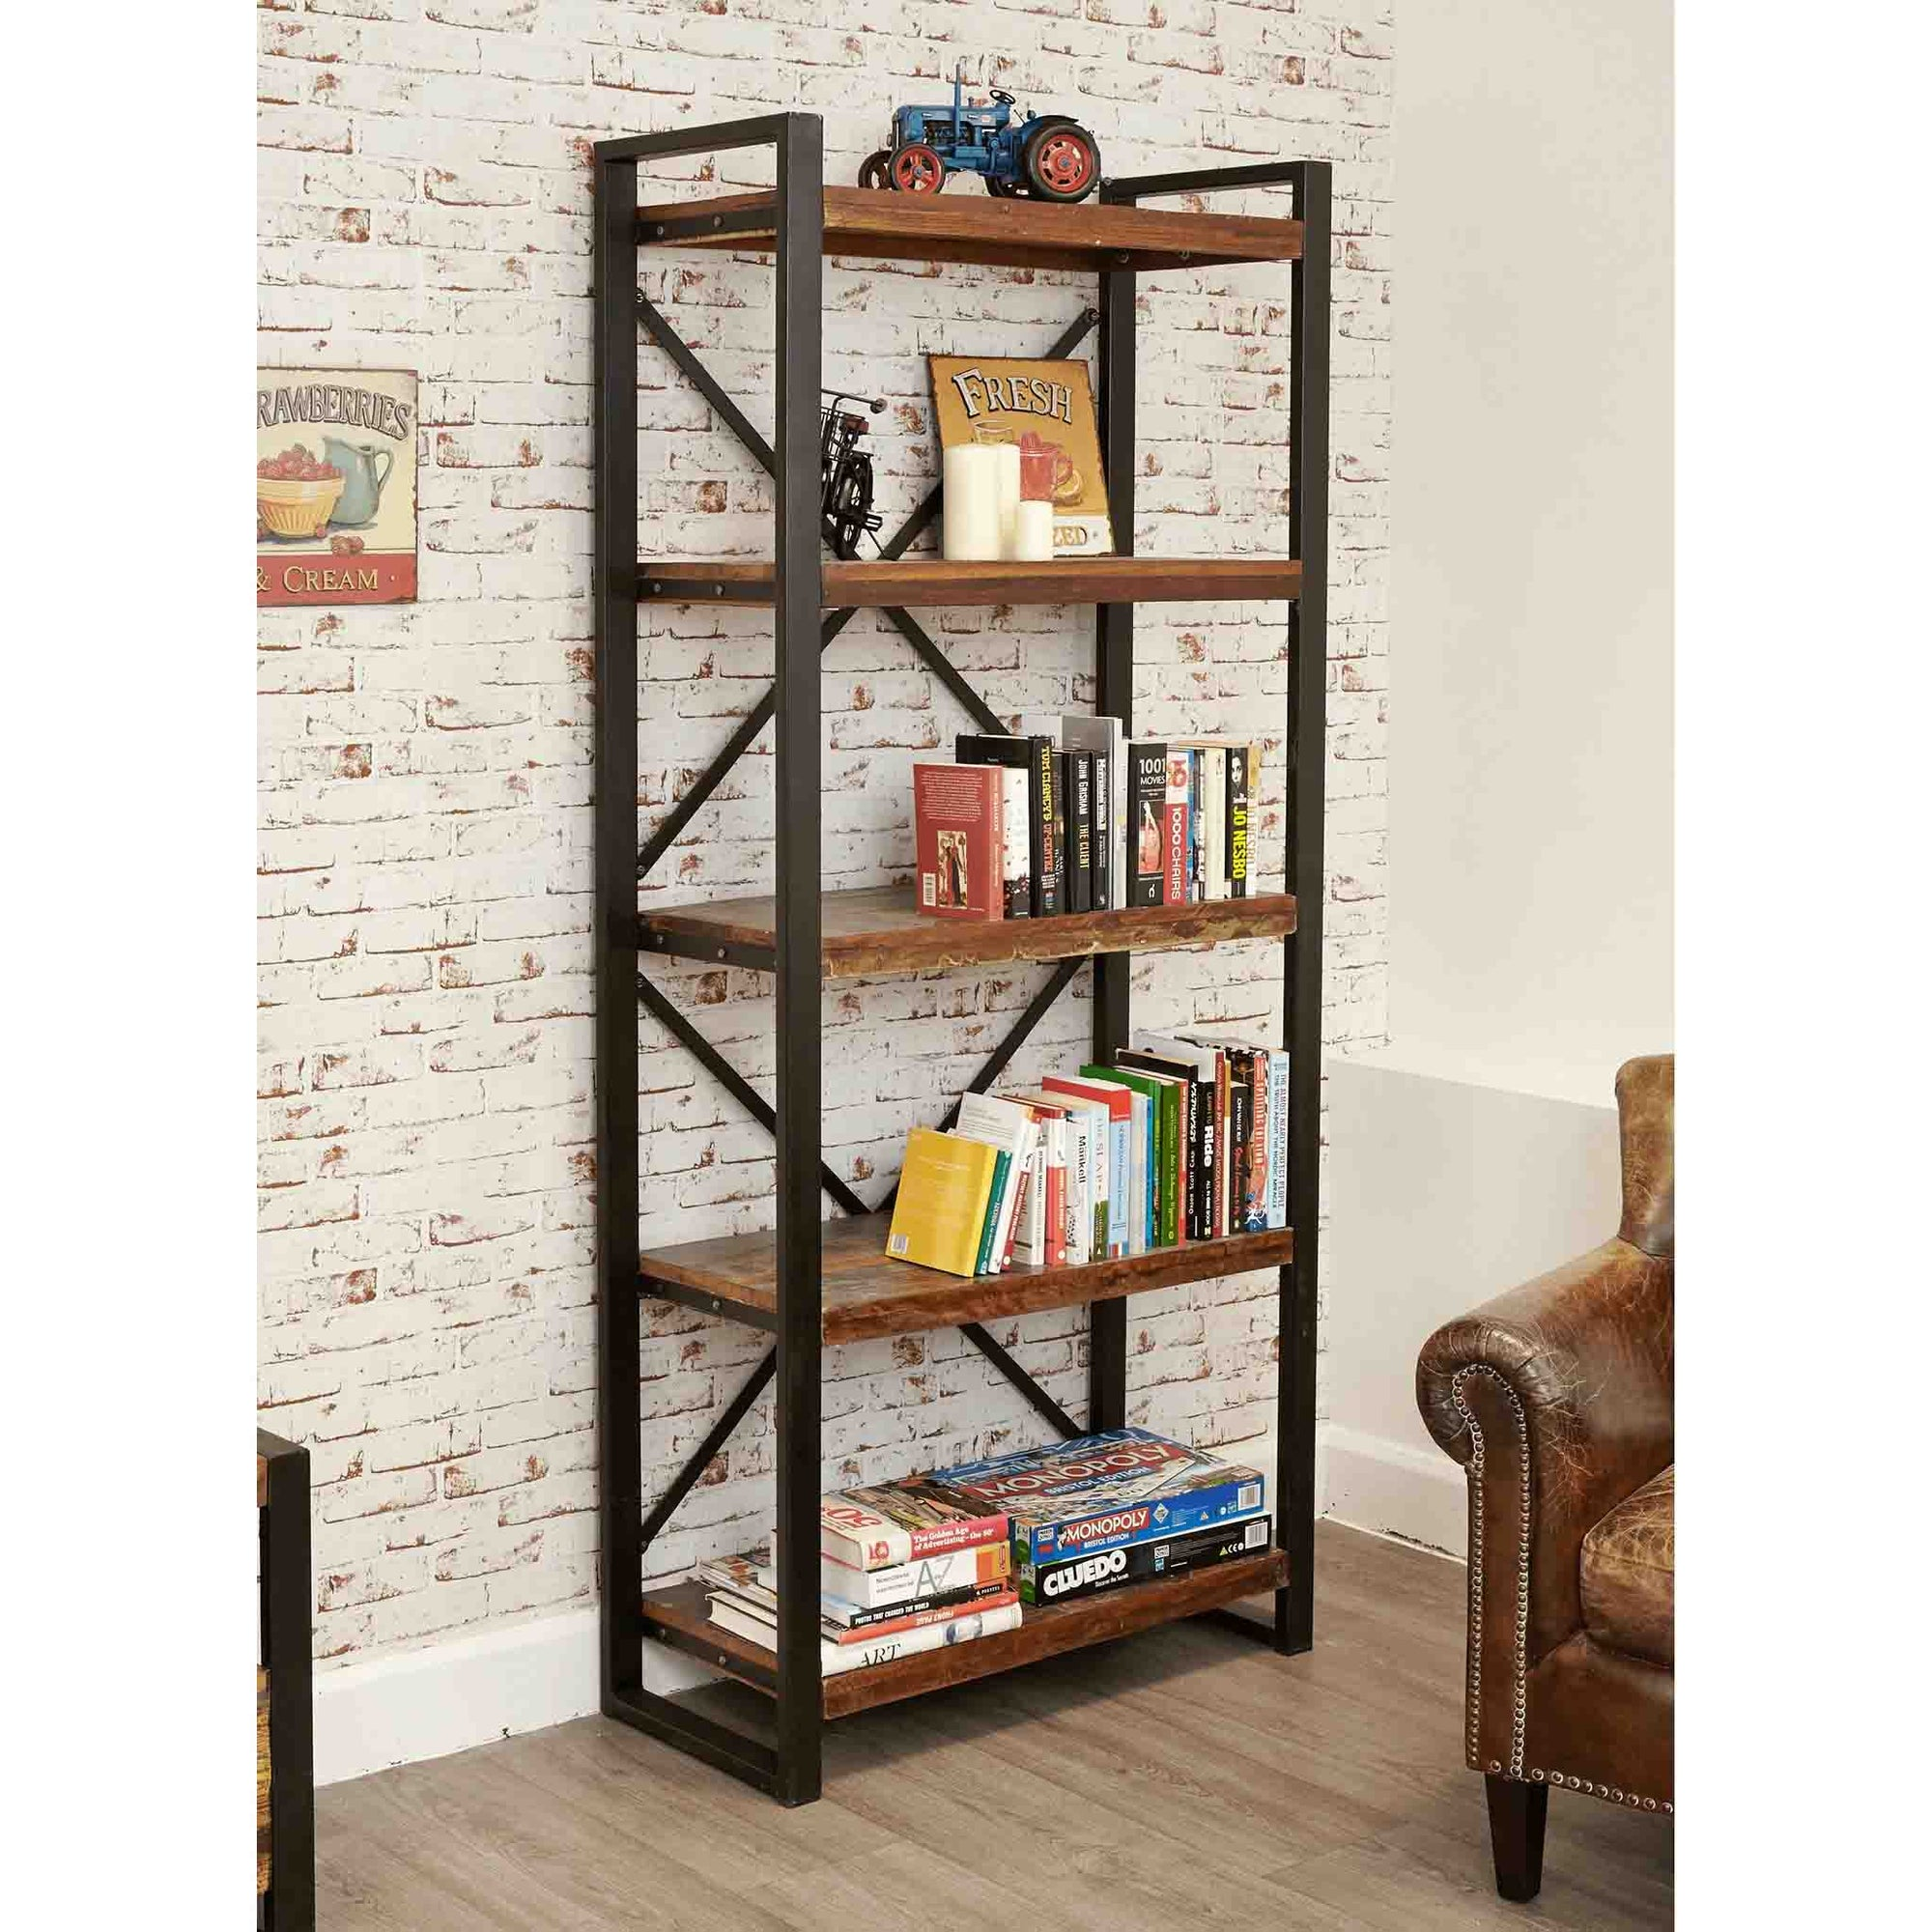 The Urban Chic Large Industrial Reclaimed Wood Bookcase with 5 Shelves from Roseland Furniture